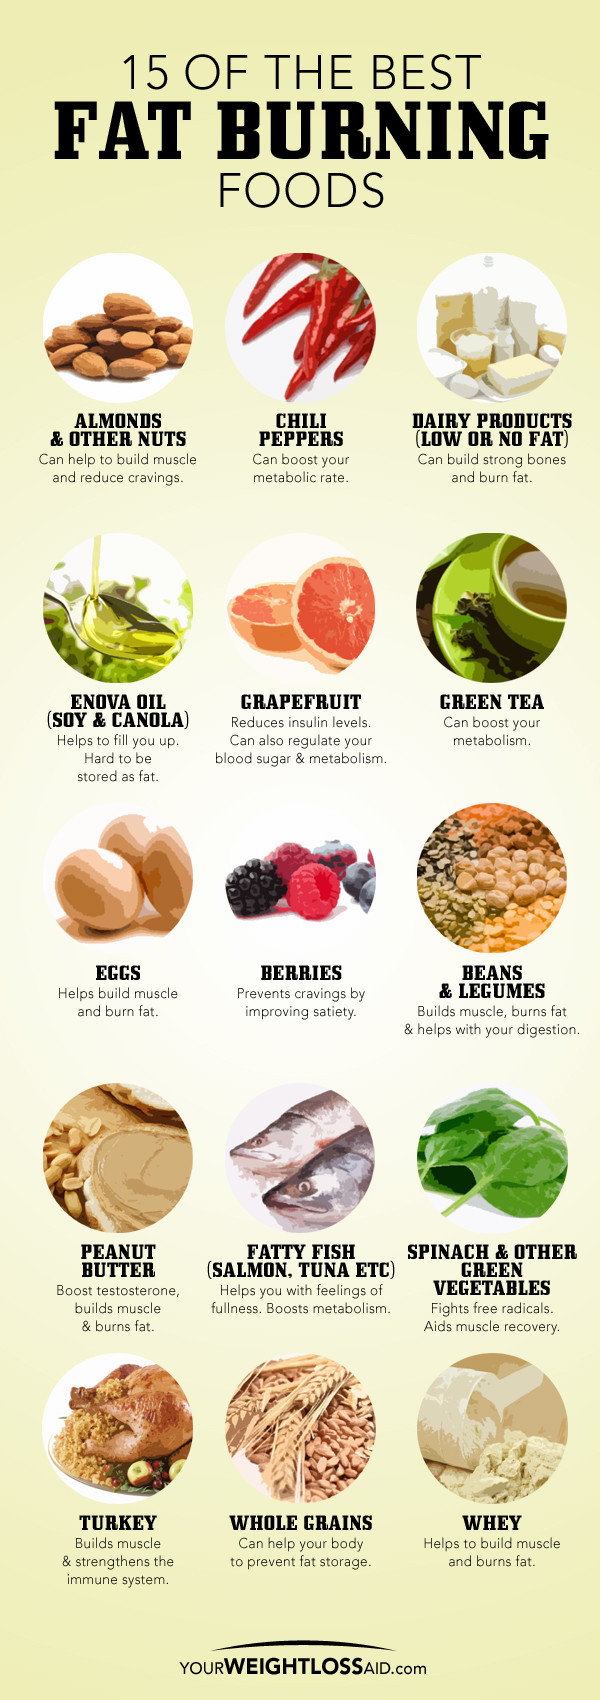 Healthy Fat Burning Snacks  Fat burning foods for men amukamara contract the fastest